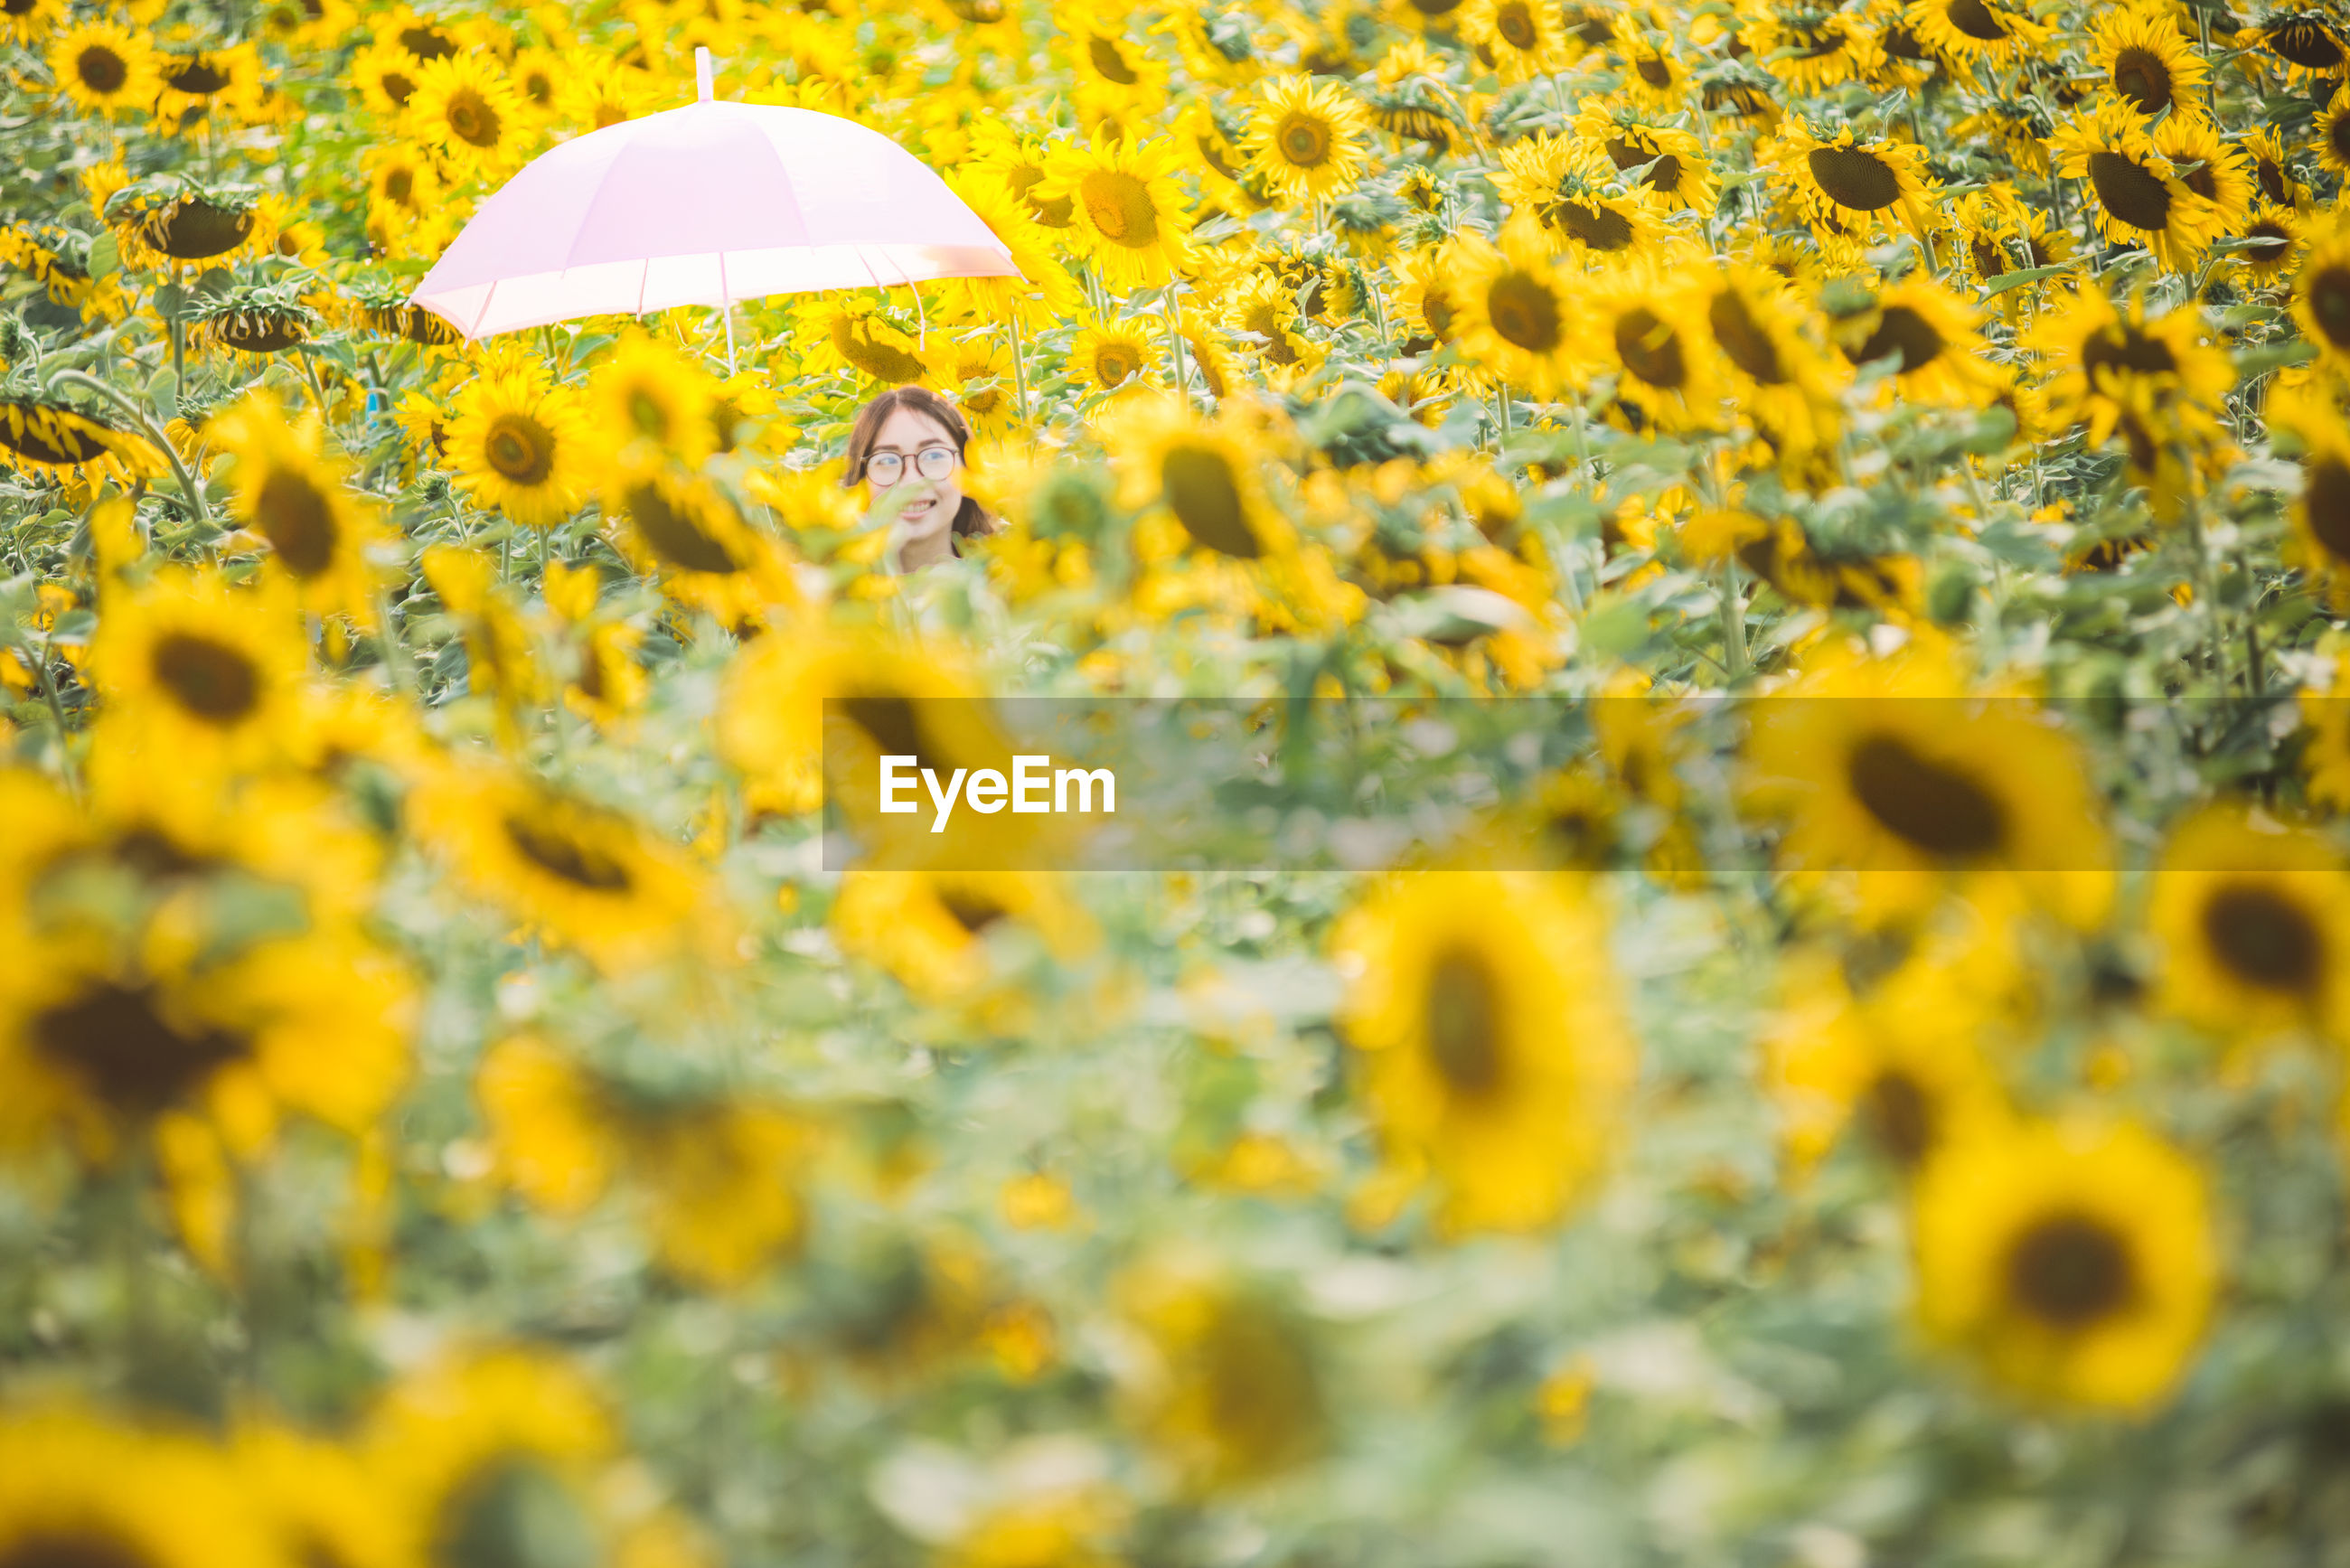 Woman with umbrella amidst sunflowers on field